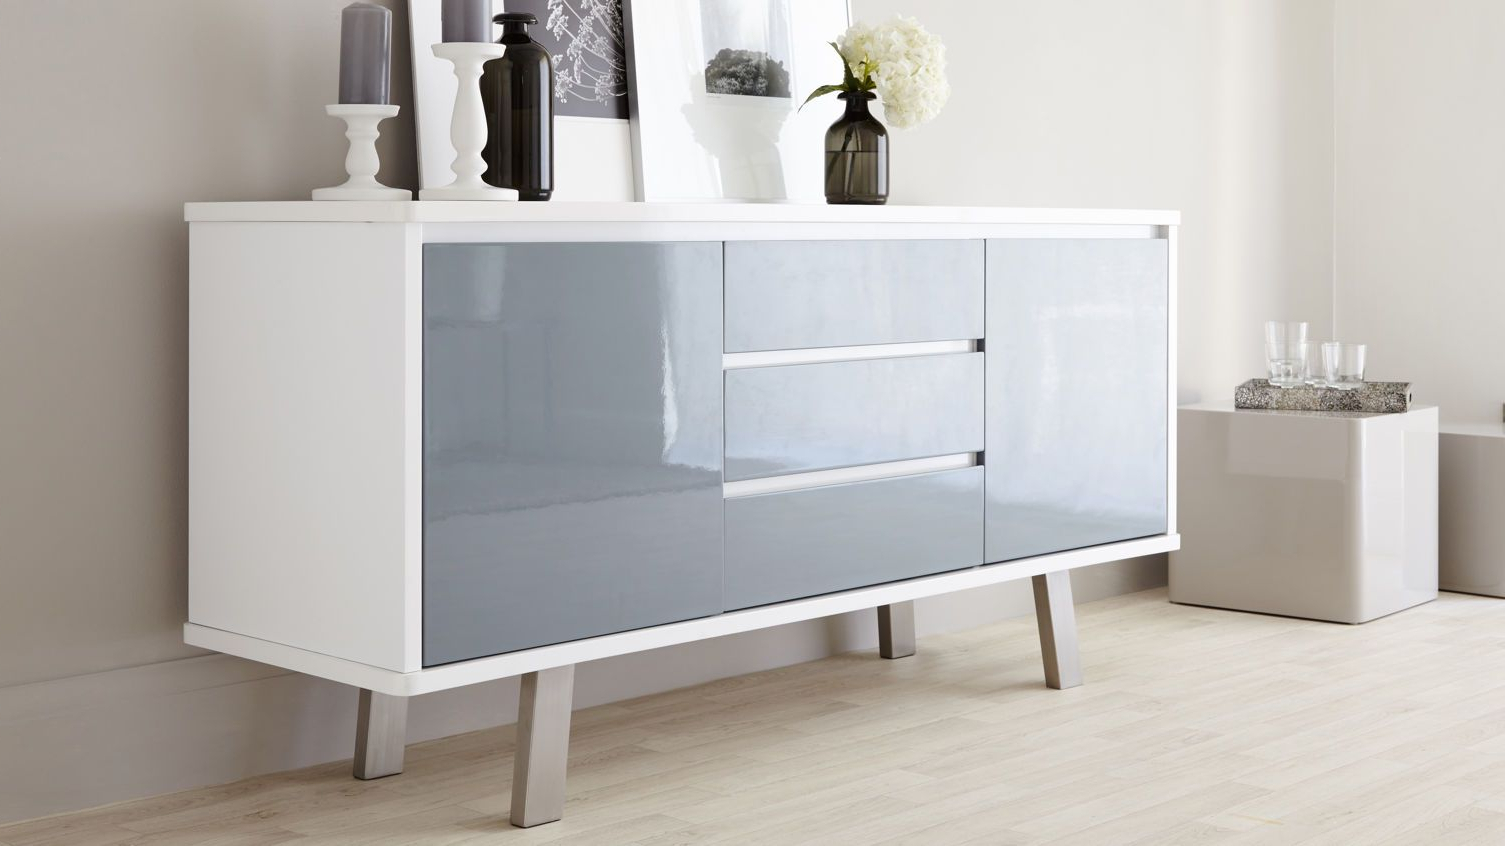 Assi White And Grey Gloss Sideboard | Danetti | Stylish Intended For White Wood And Chrome Metal High Gloss Buffets (View 15 of 20)